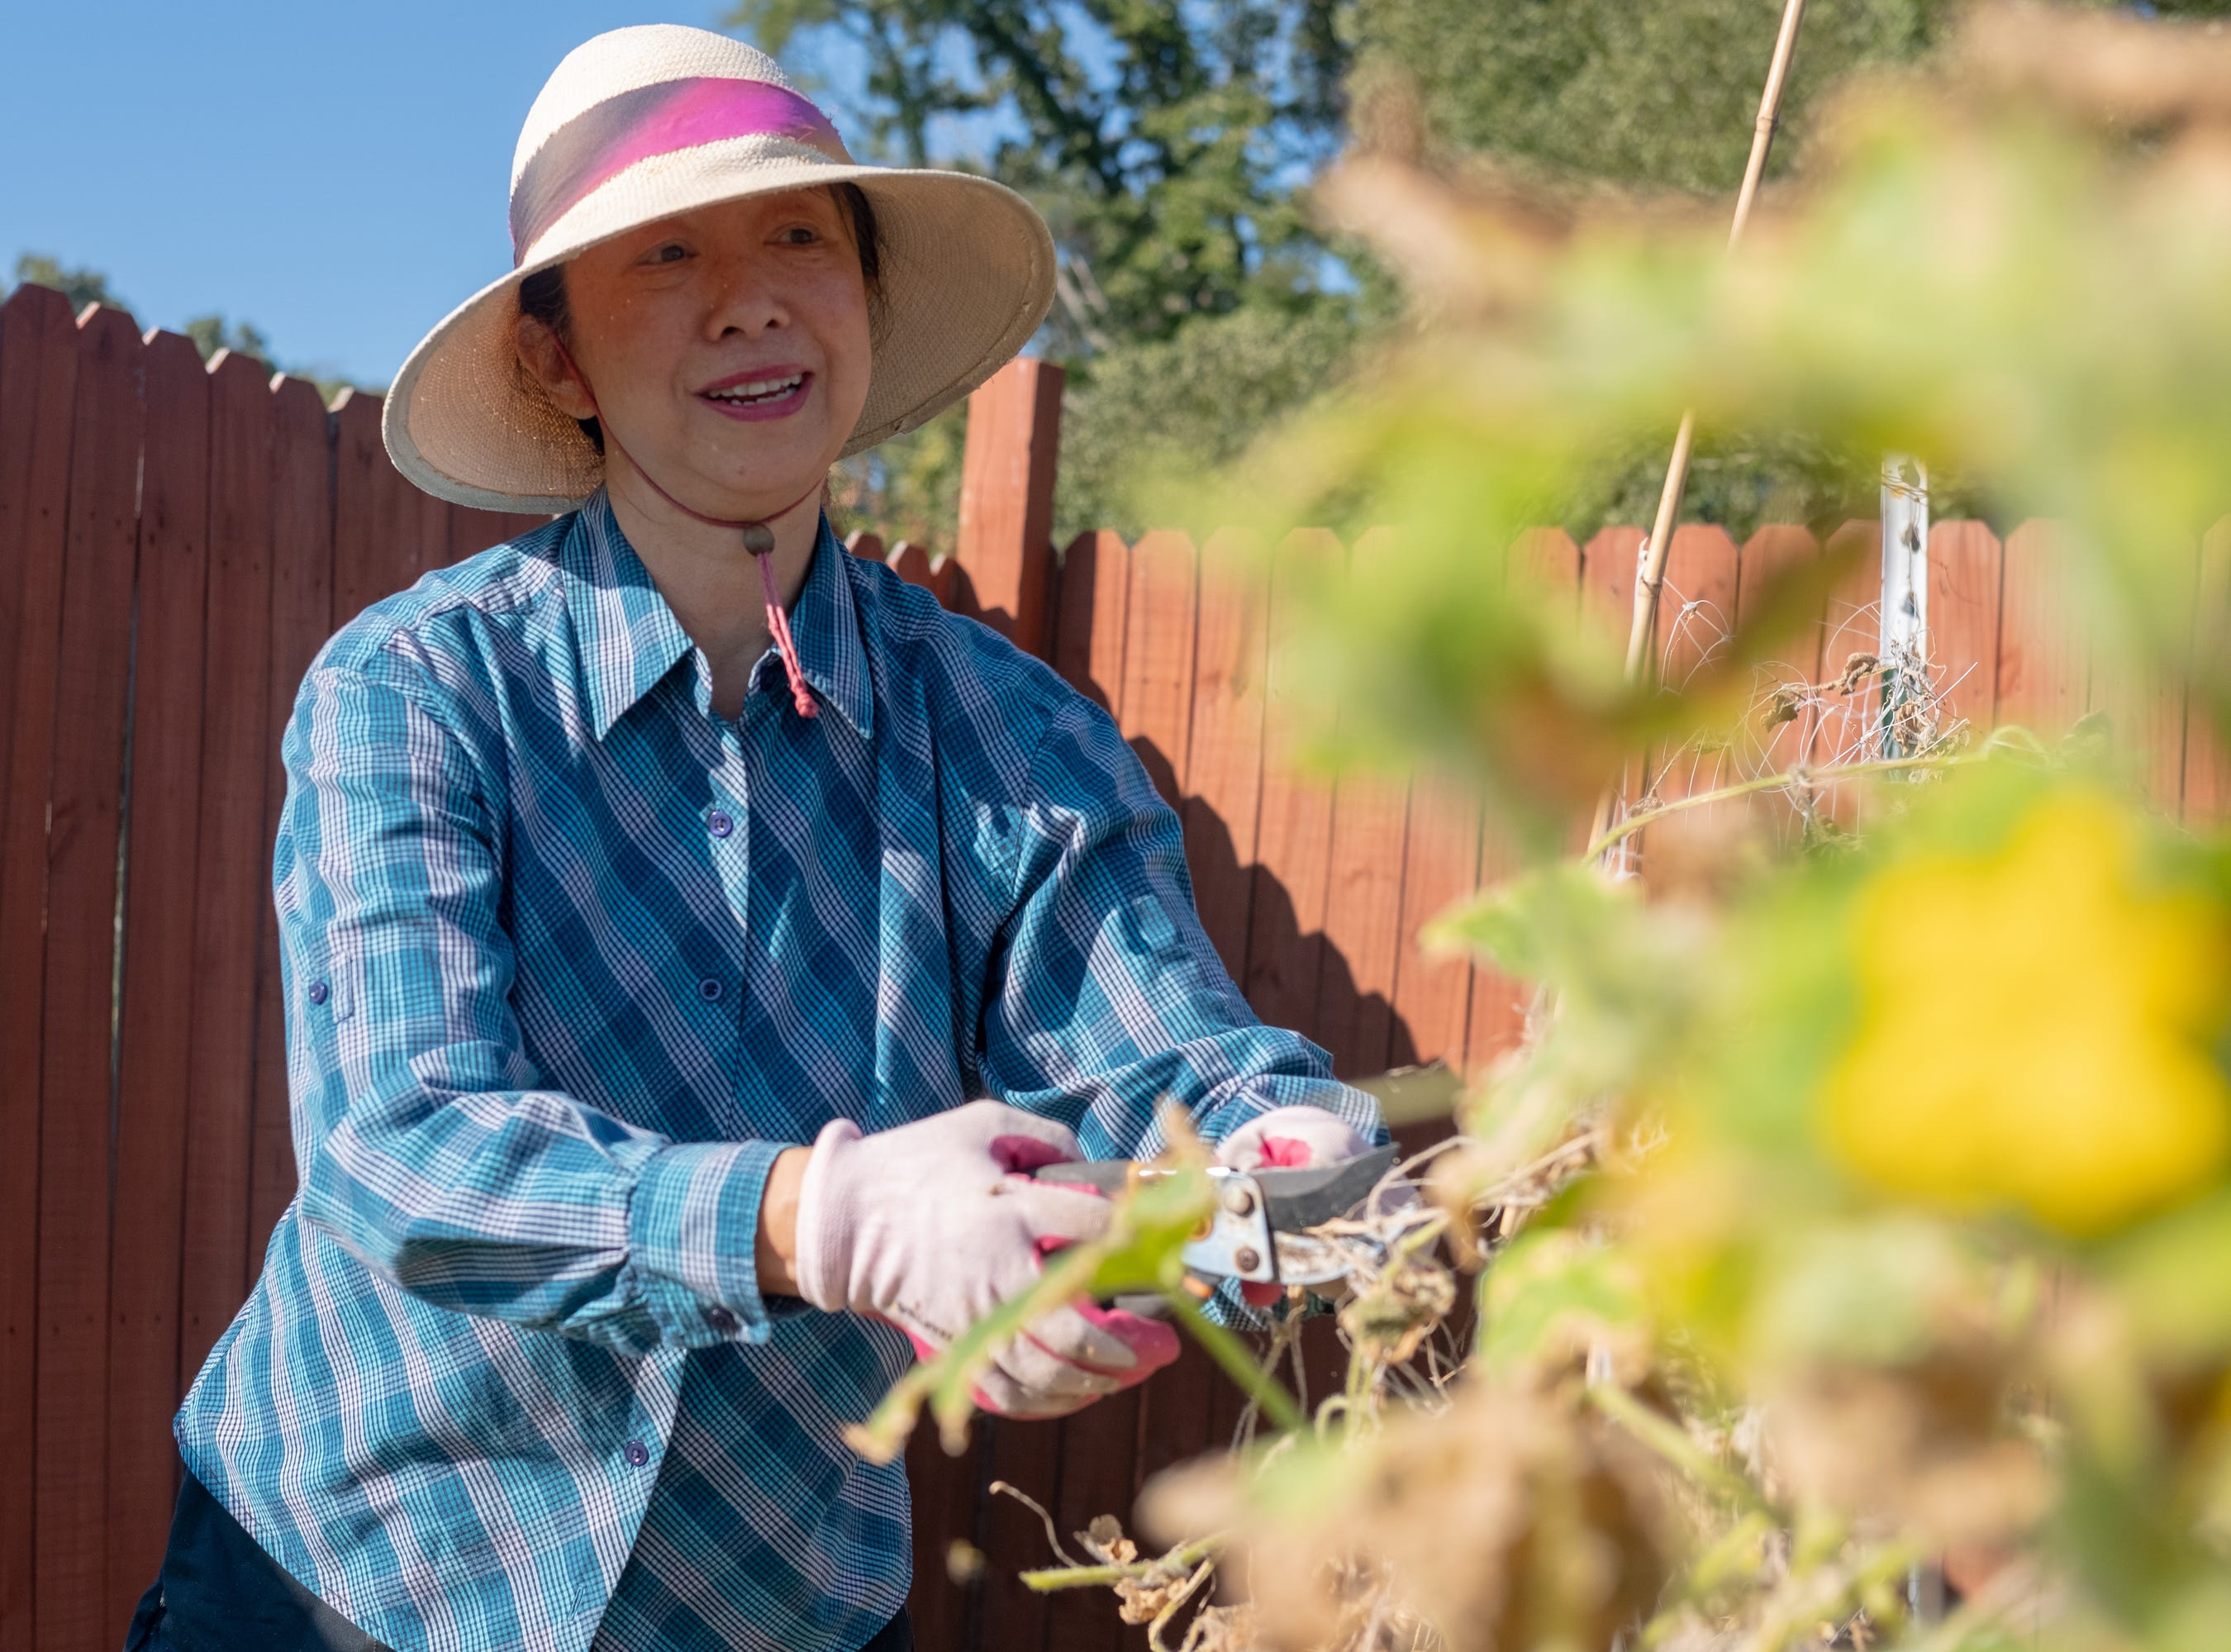 Ting Ting Davis, a member of St. Andrews Episcopal Church, trims vines in the Epiphany Community Garden in Collierville on Saturday, Sept. 15, 2018.